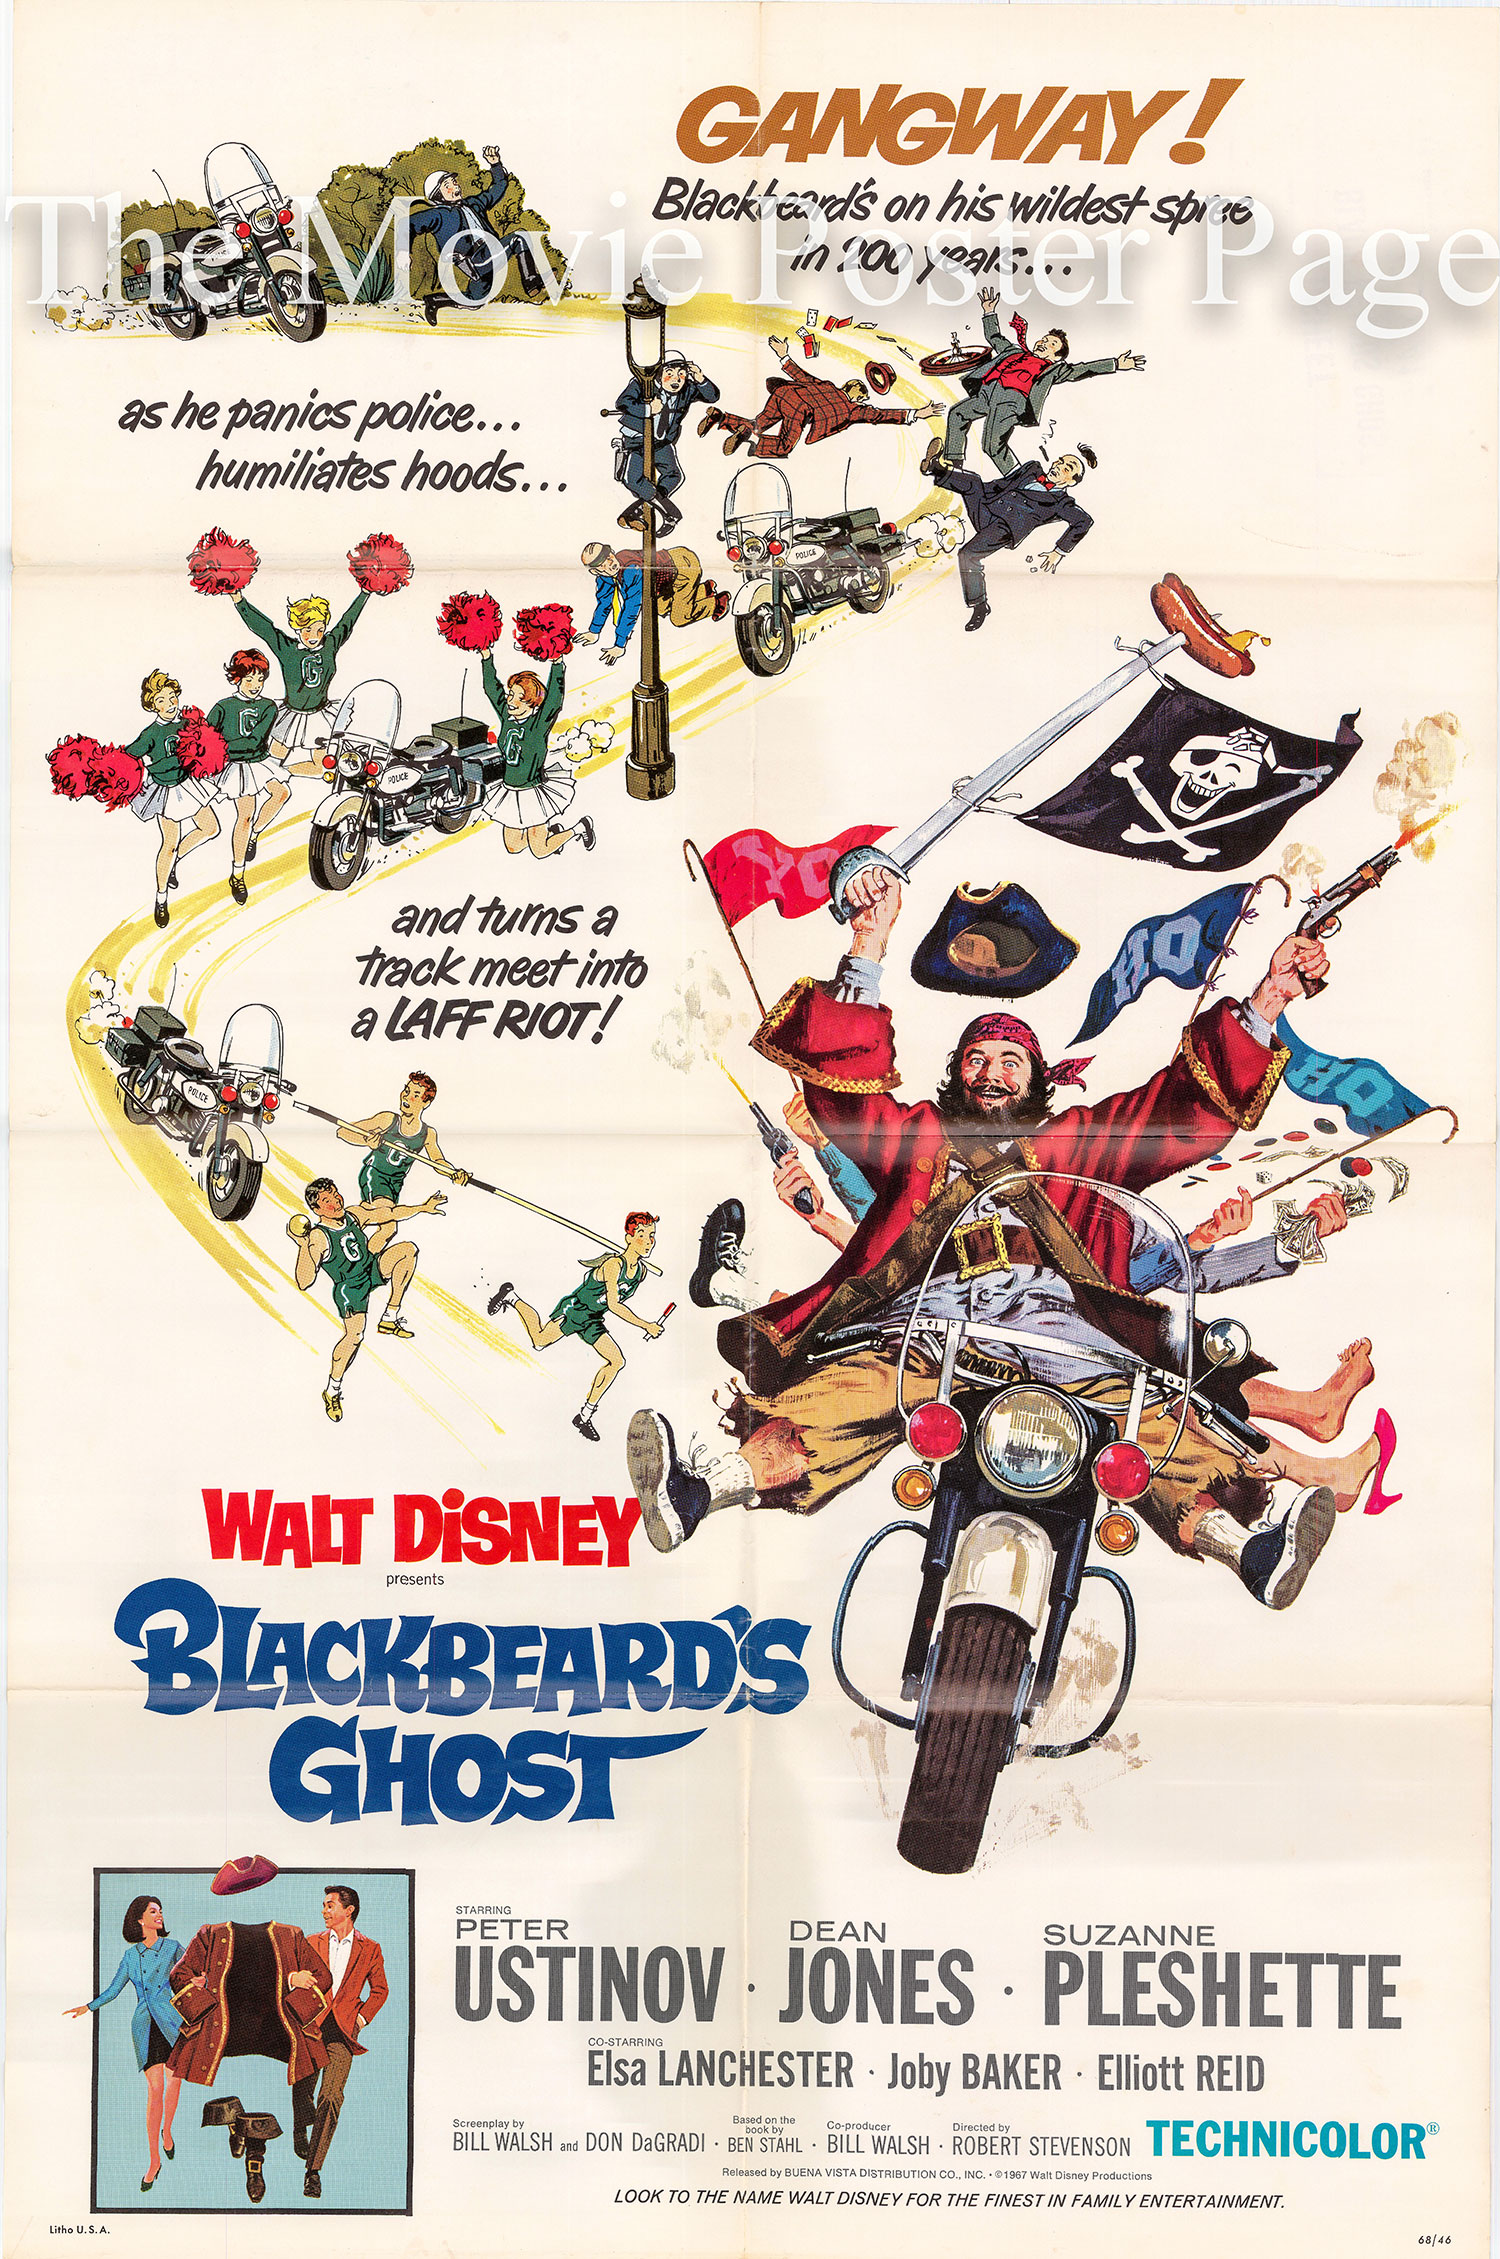 Pictured is a US one-sheet poster for the 1968 Robert Stevenson film Blackbeard's Ghost starring Peter Ustinov as Captain Blackbeard.